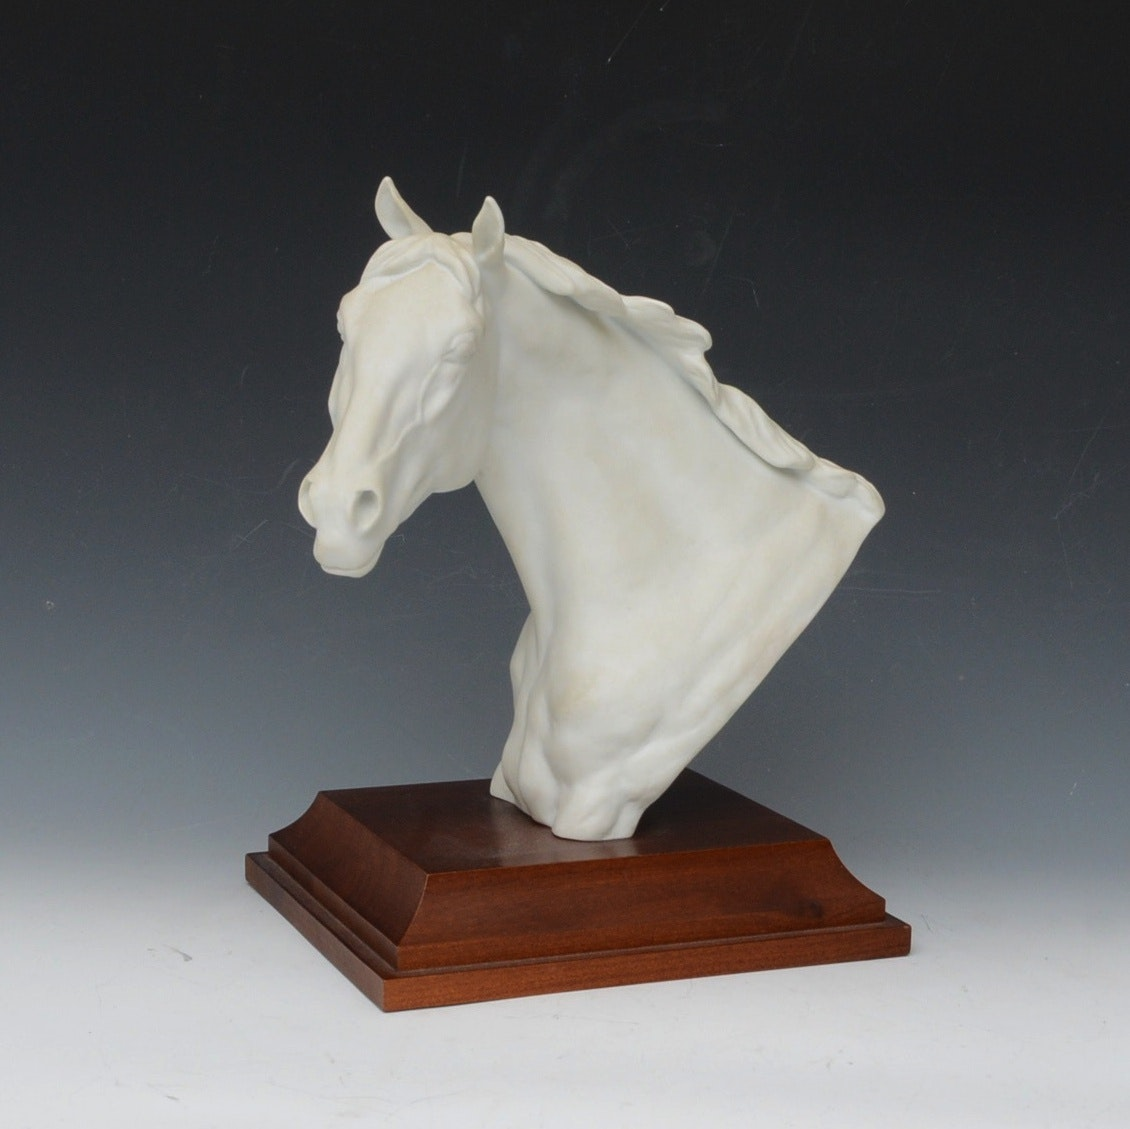 Kaiser Bisque Porcelain Horse with Wood Base